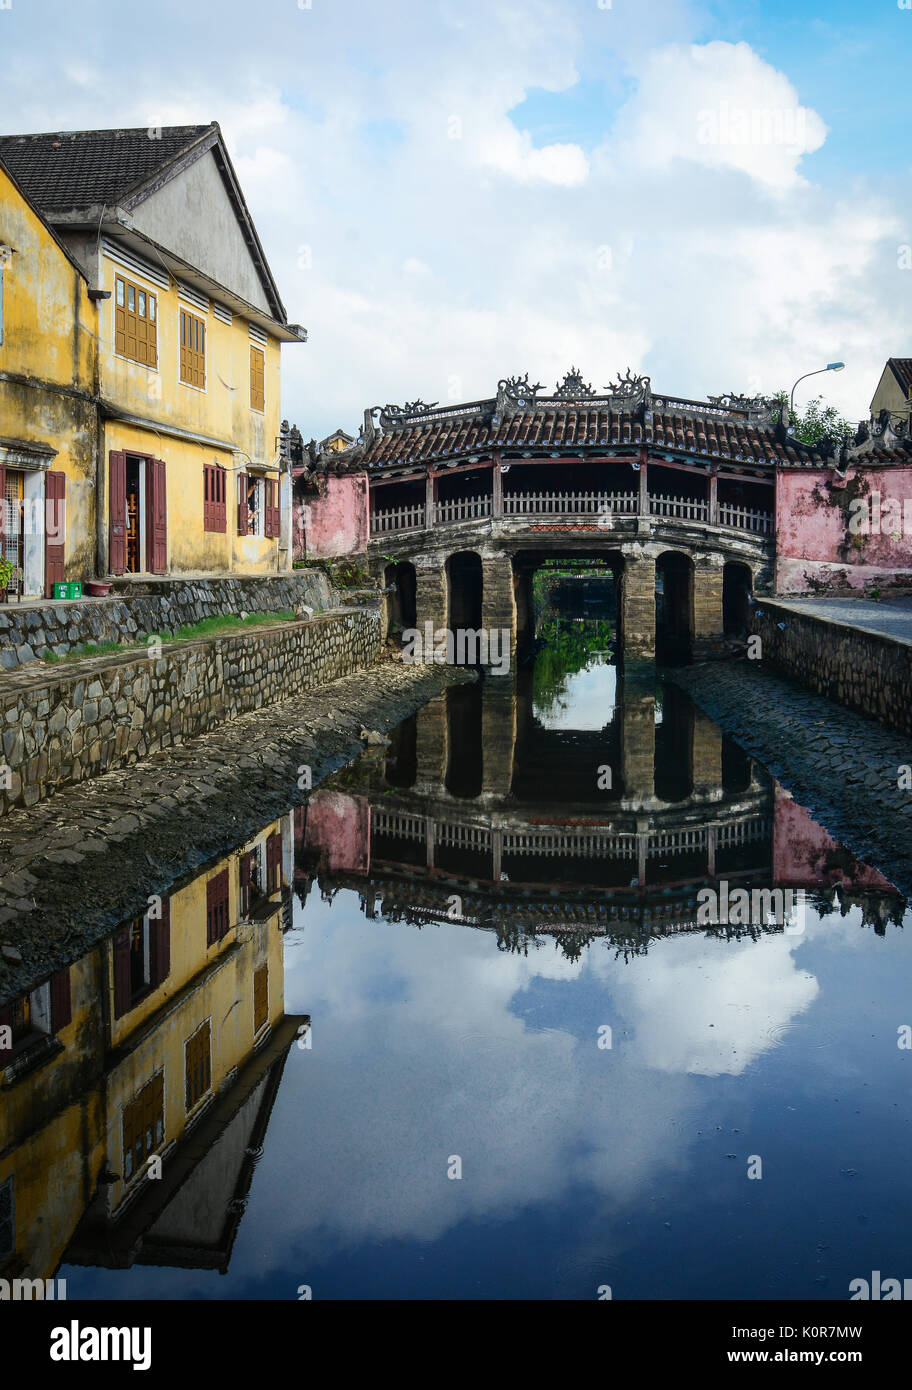 Reflection of the Japanese Bridge Pagoda (Chua Cau) in Hoi An, Vietnam. Ancient and peaceful, Hoi An is one of the most popular destinations in Vietna - Stock Image